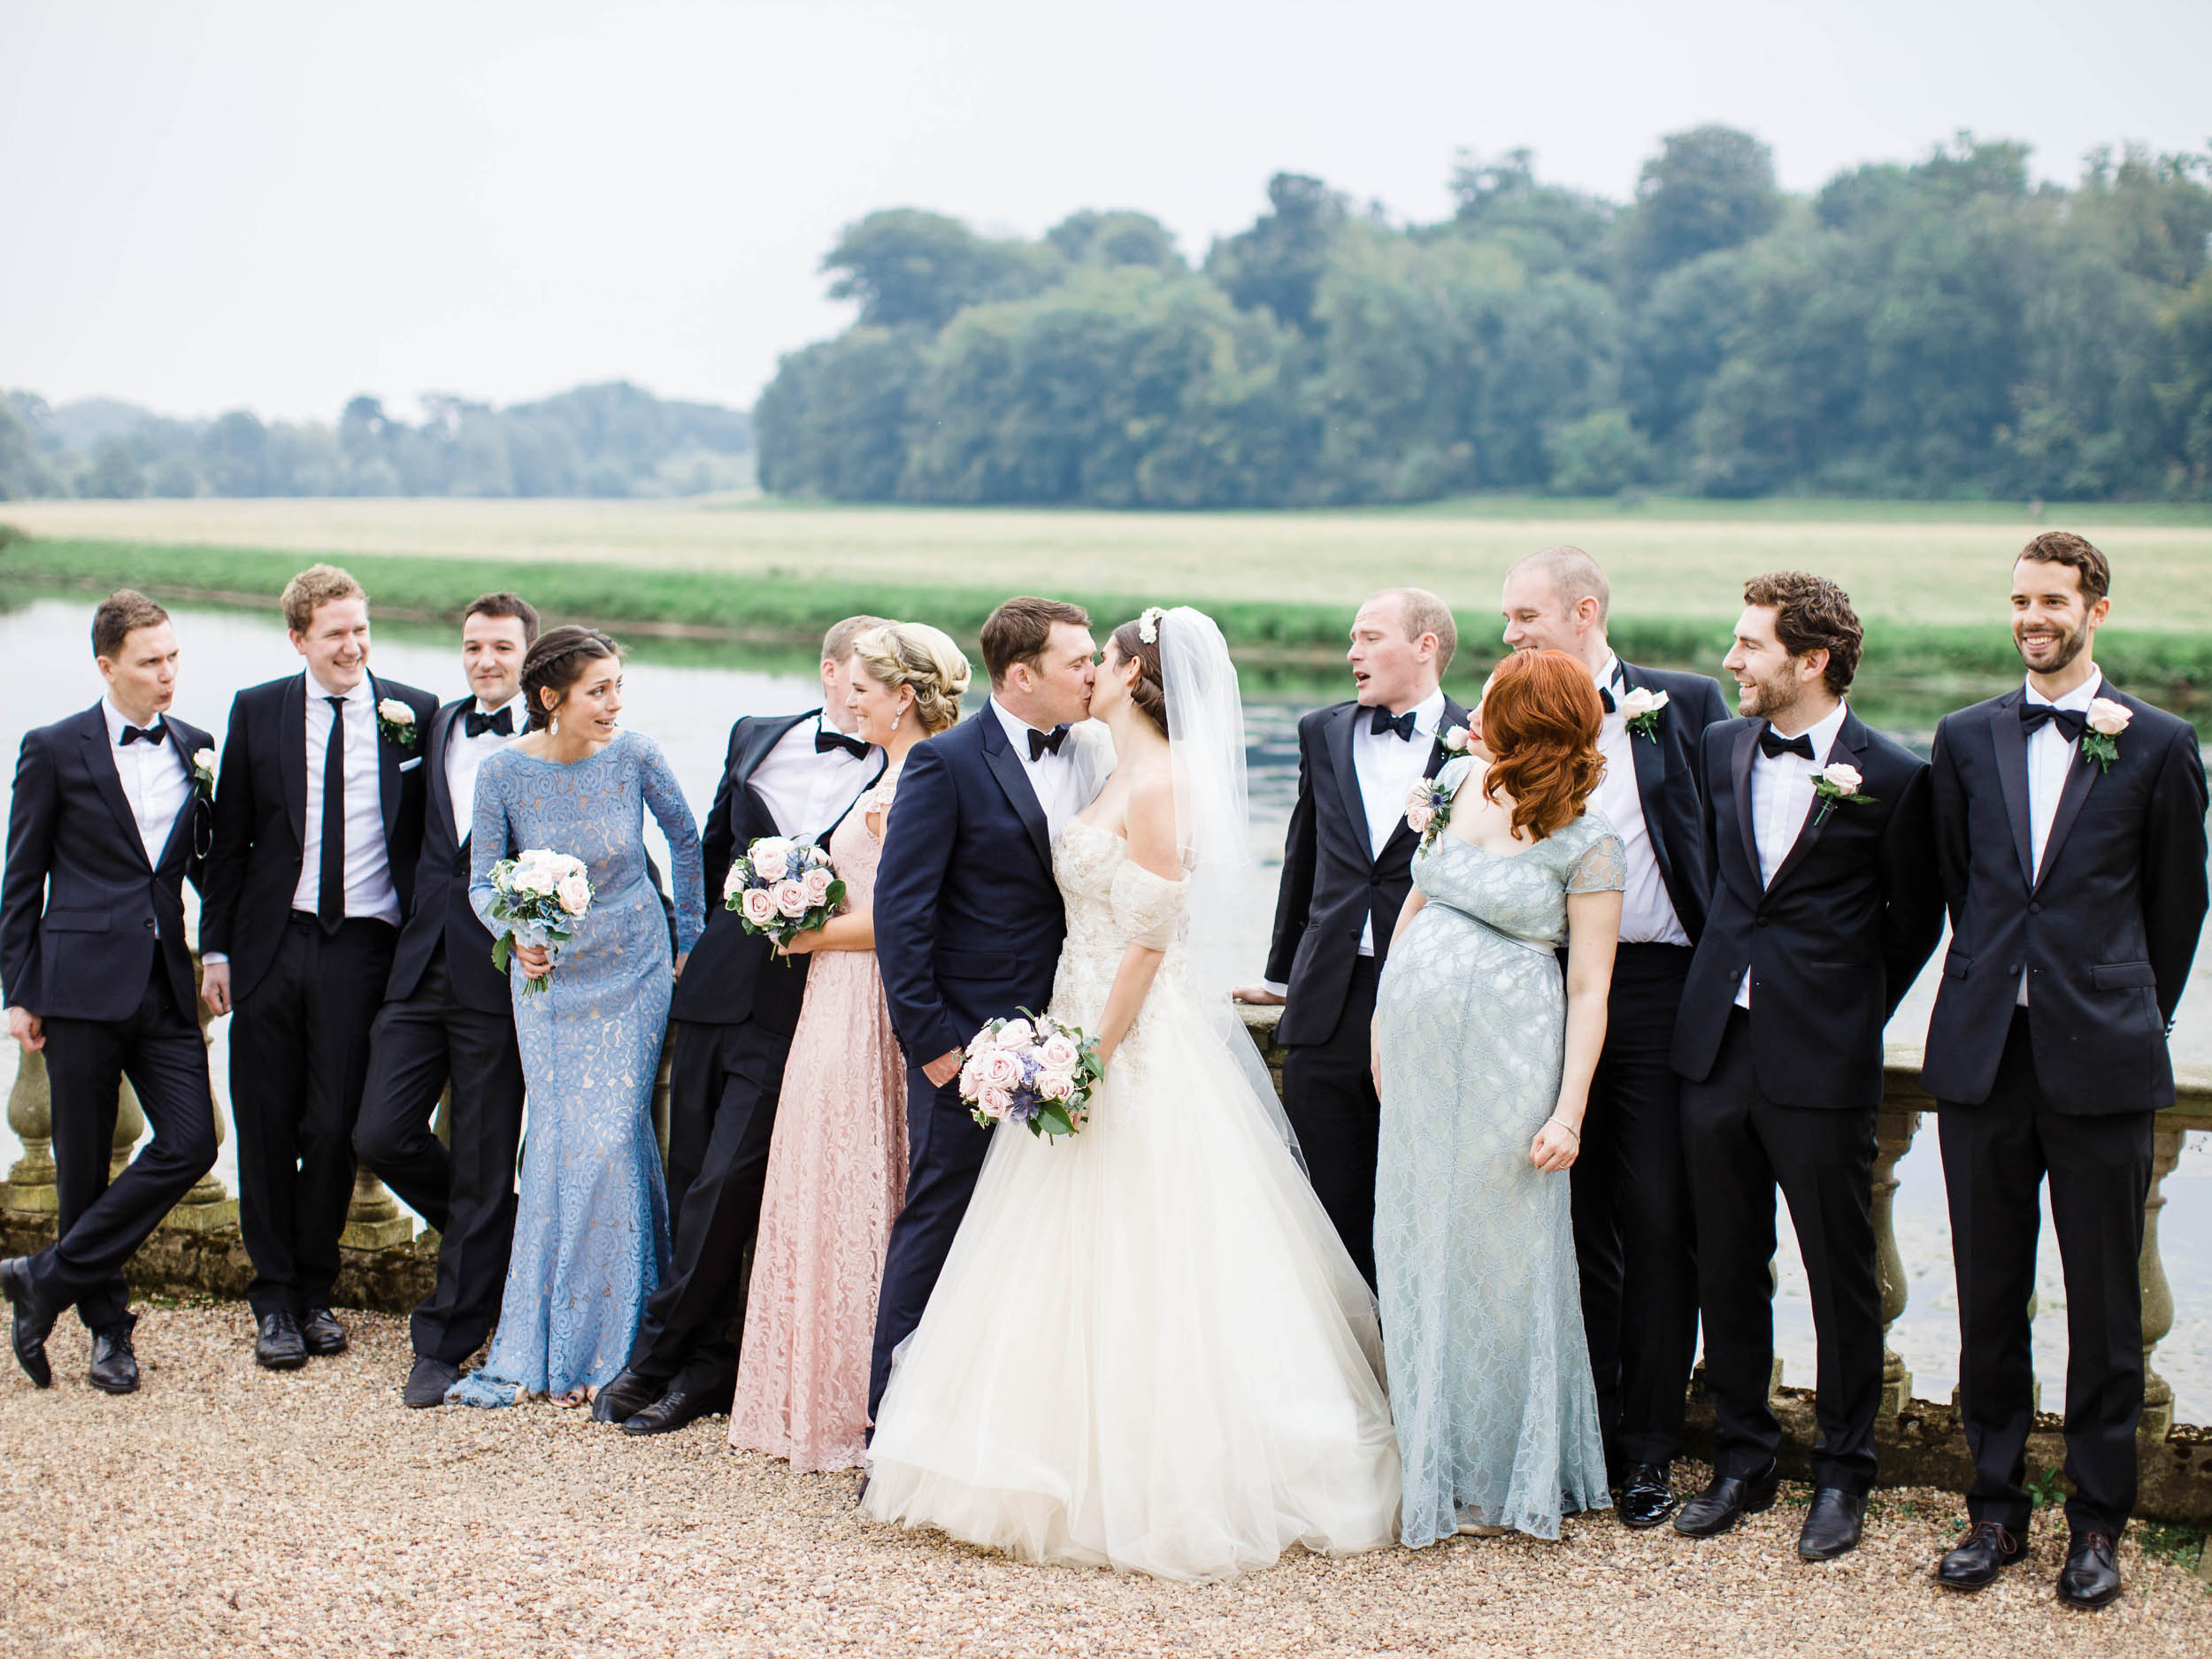 Amy O'Boyle Photography- Destination & UK Fine Art Film Wedding Photographer- Stoneleigh Abbey Wedding-12.jpg